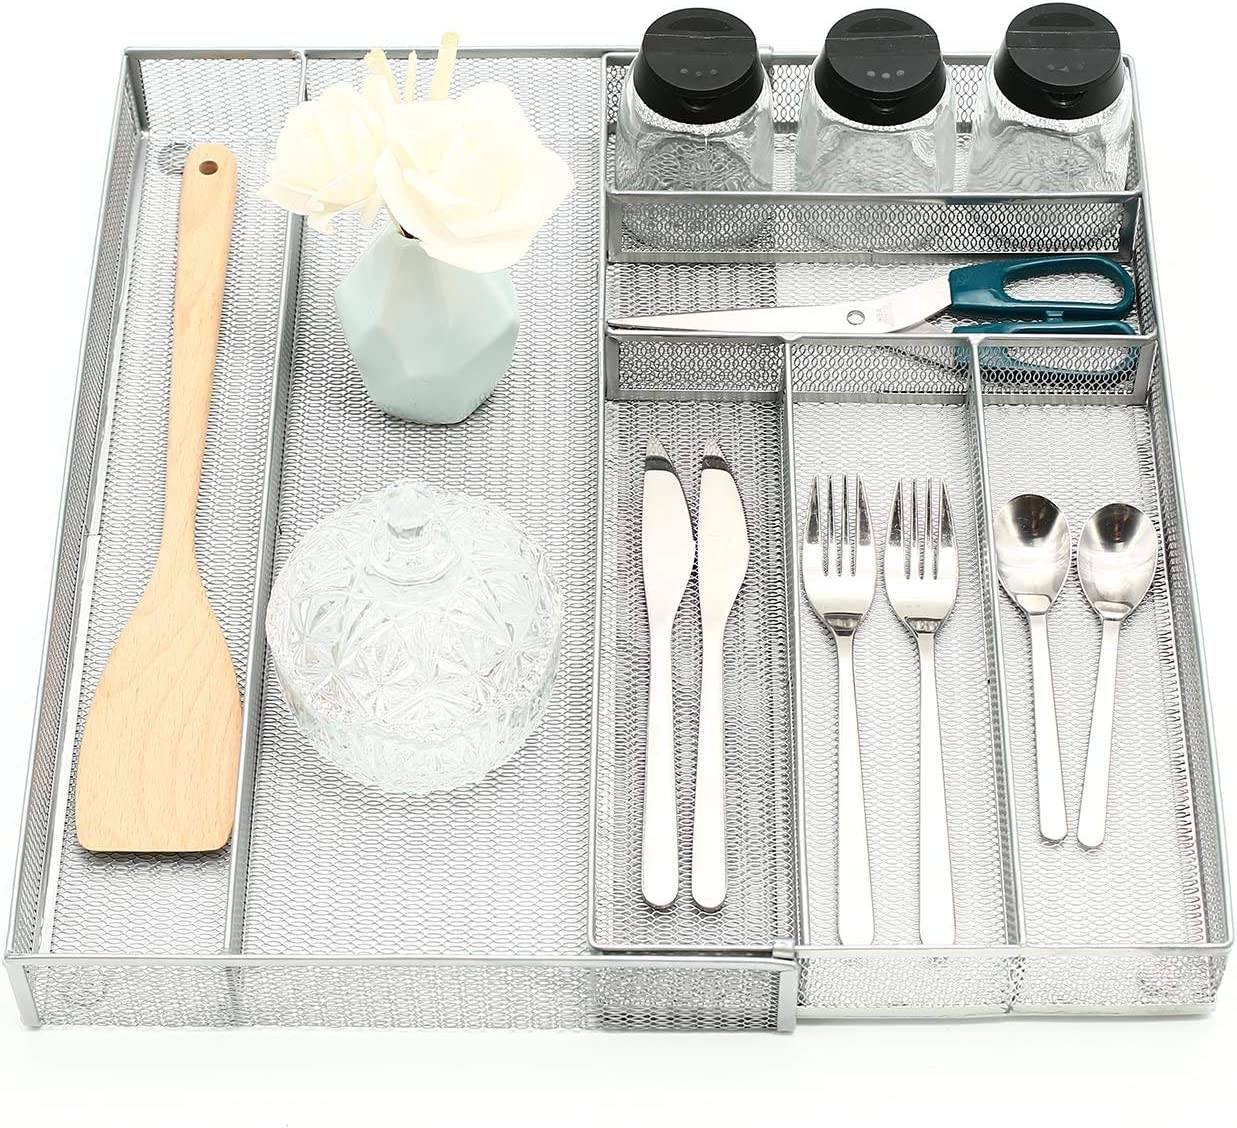 Ovicar Mesh Kitchen Drawer Cutlery Trays, Expandable Silverware Tray, Utility Flatware Organizer Utensil Holder with Non-slip Feet for Kitchen, Office, Bathroom Supplies (7 Slot Silver)